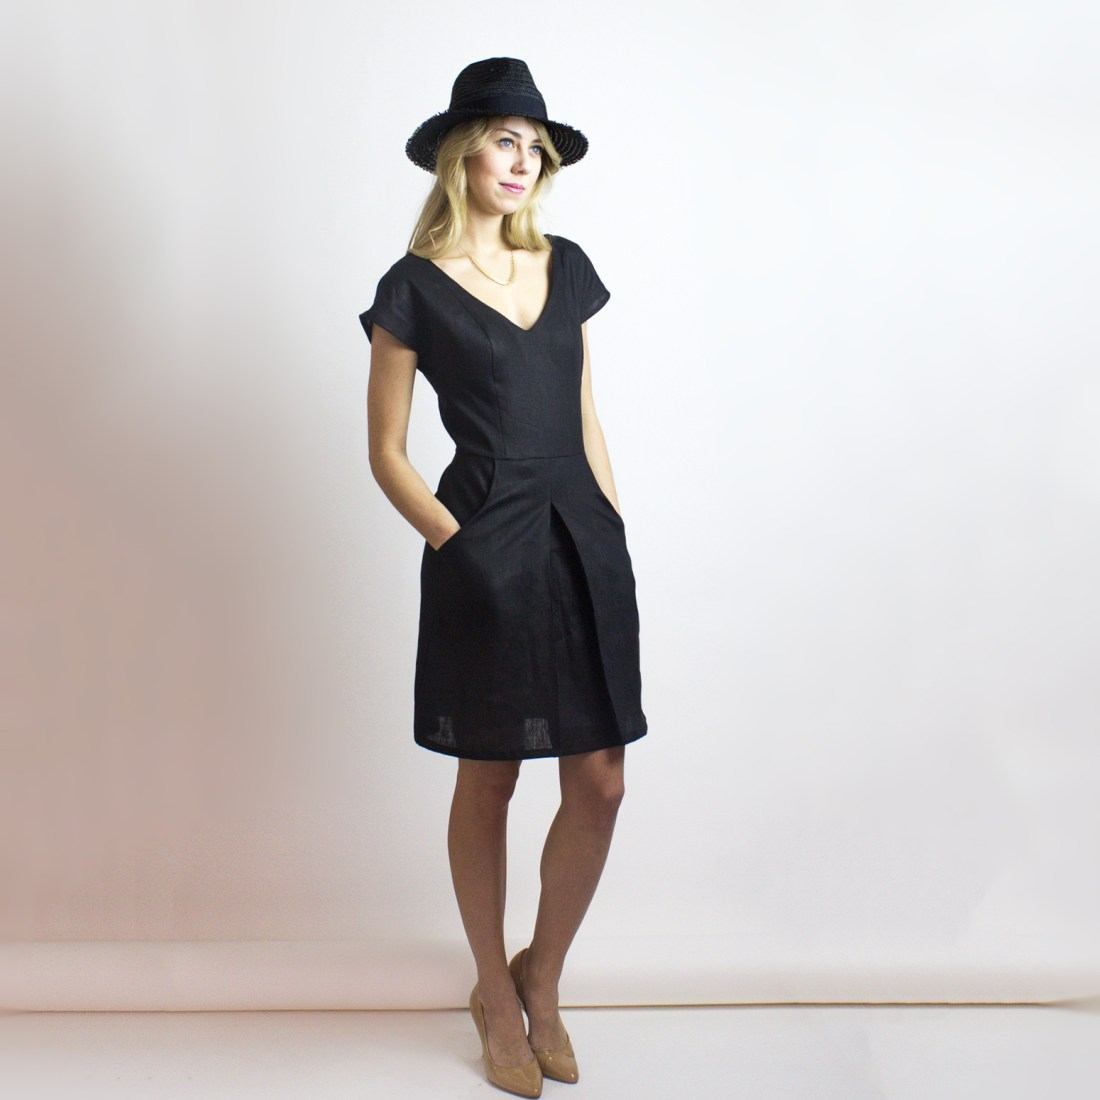 Alexa Dress Black Organic Cotton & Organic Linen from Simone's Rose SS16 Collection | eco-conscious and sustainable women's fashion label made in downtown Toronto